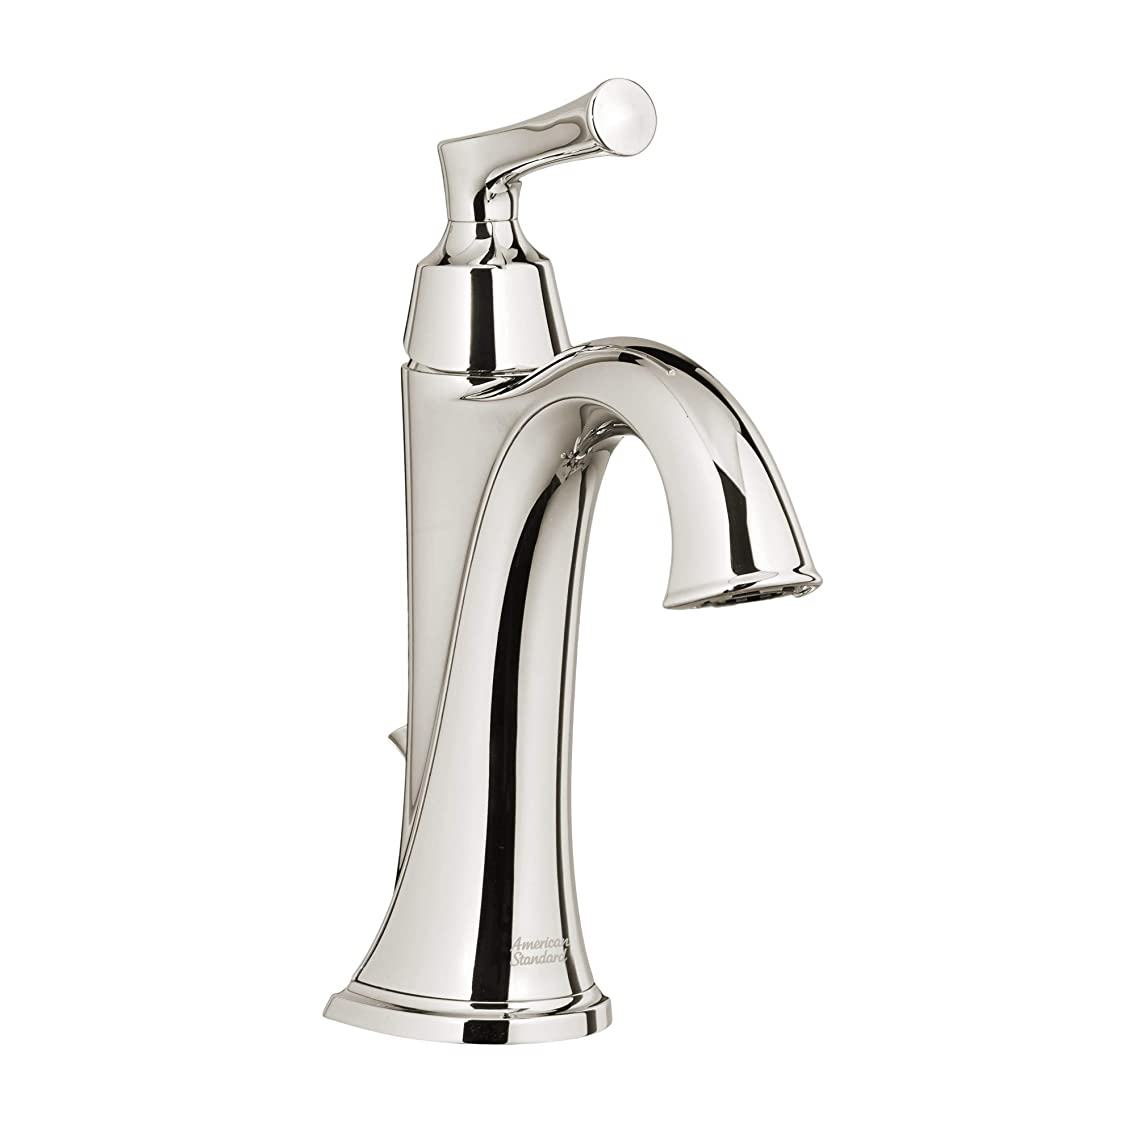 American Standard 7722.101.013 Estate Single Hole Bathroom Faucet - Includes Speed Connect Metal Pop-Up Drain